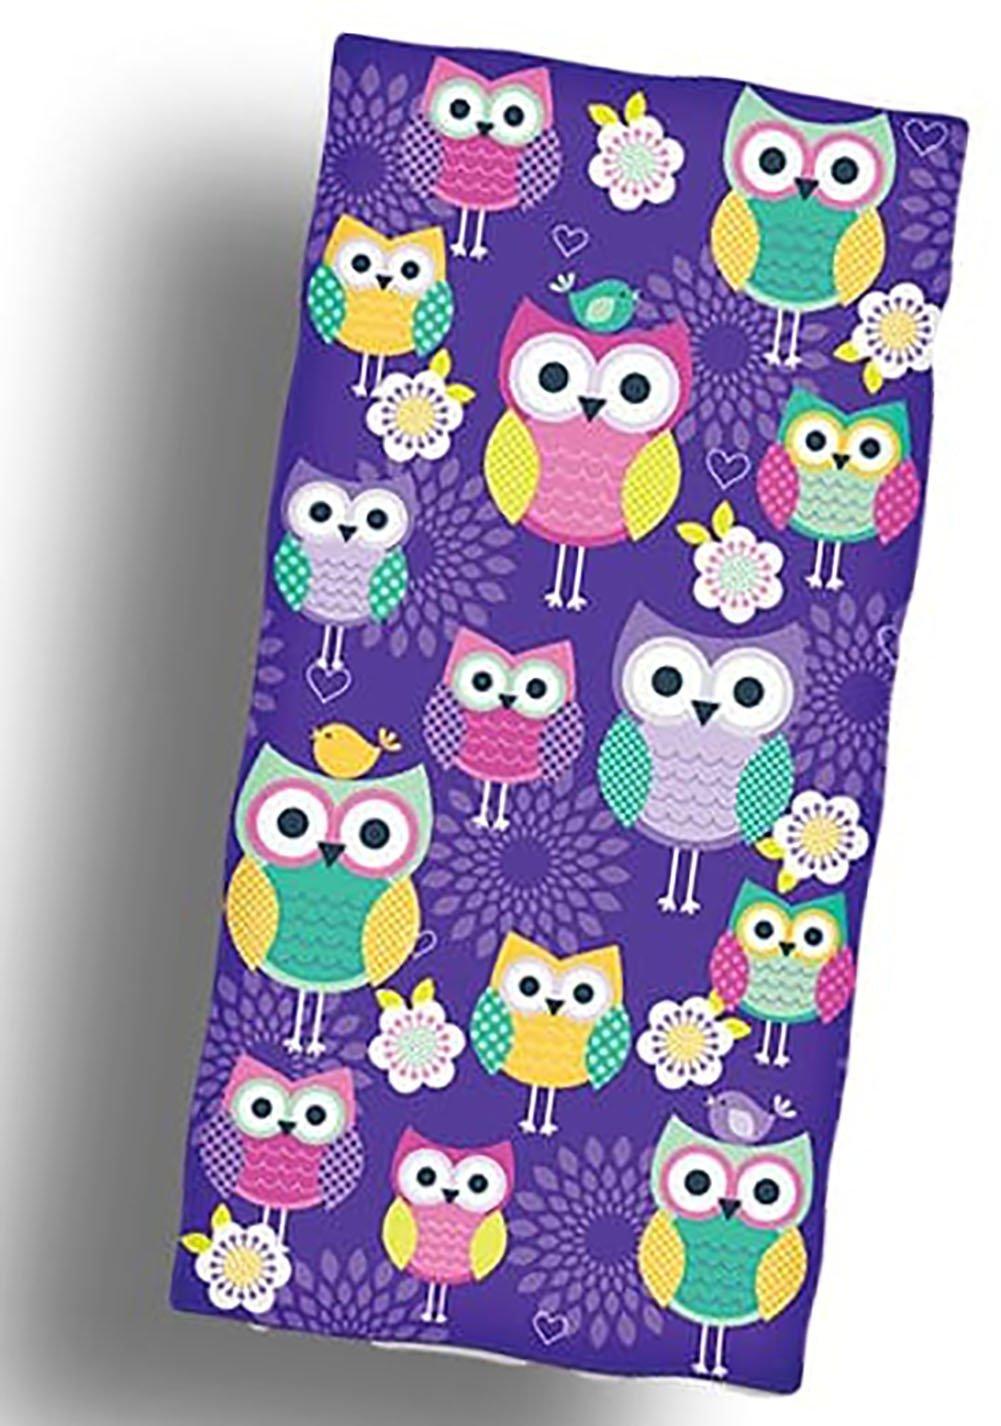 "Custom & Luxurious {36"" x 58"" Inch} 1 Single Large & Thin Soft Summer Beach & Bath Towels Made of Quick-Dry Cotton w/ Colorful Basic Girly Owls Lounging Vacation Souvenir Style [Multicolor]"